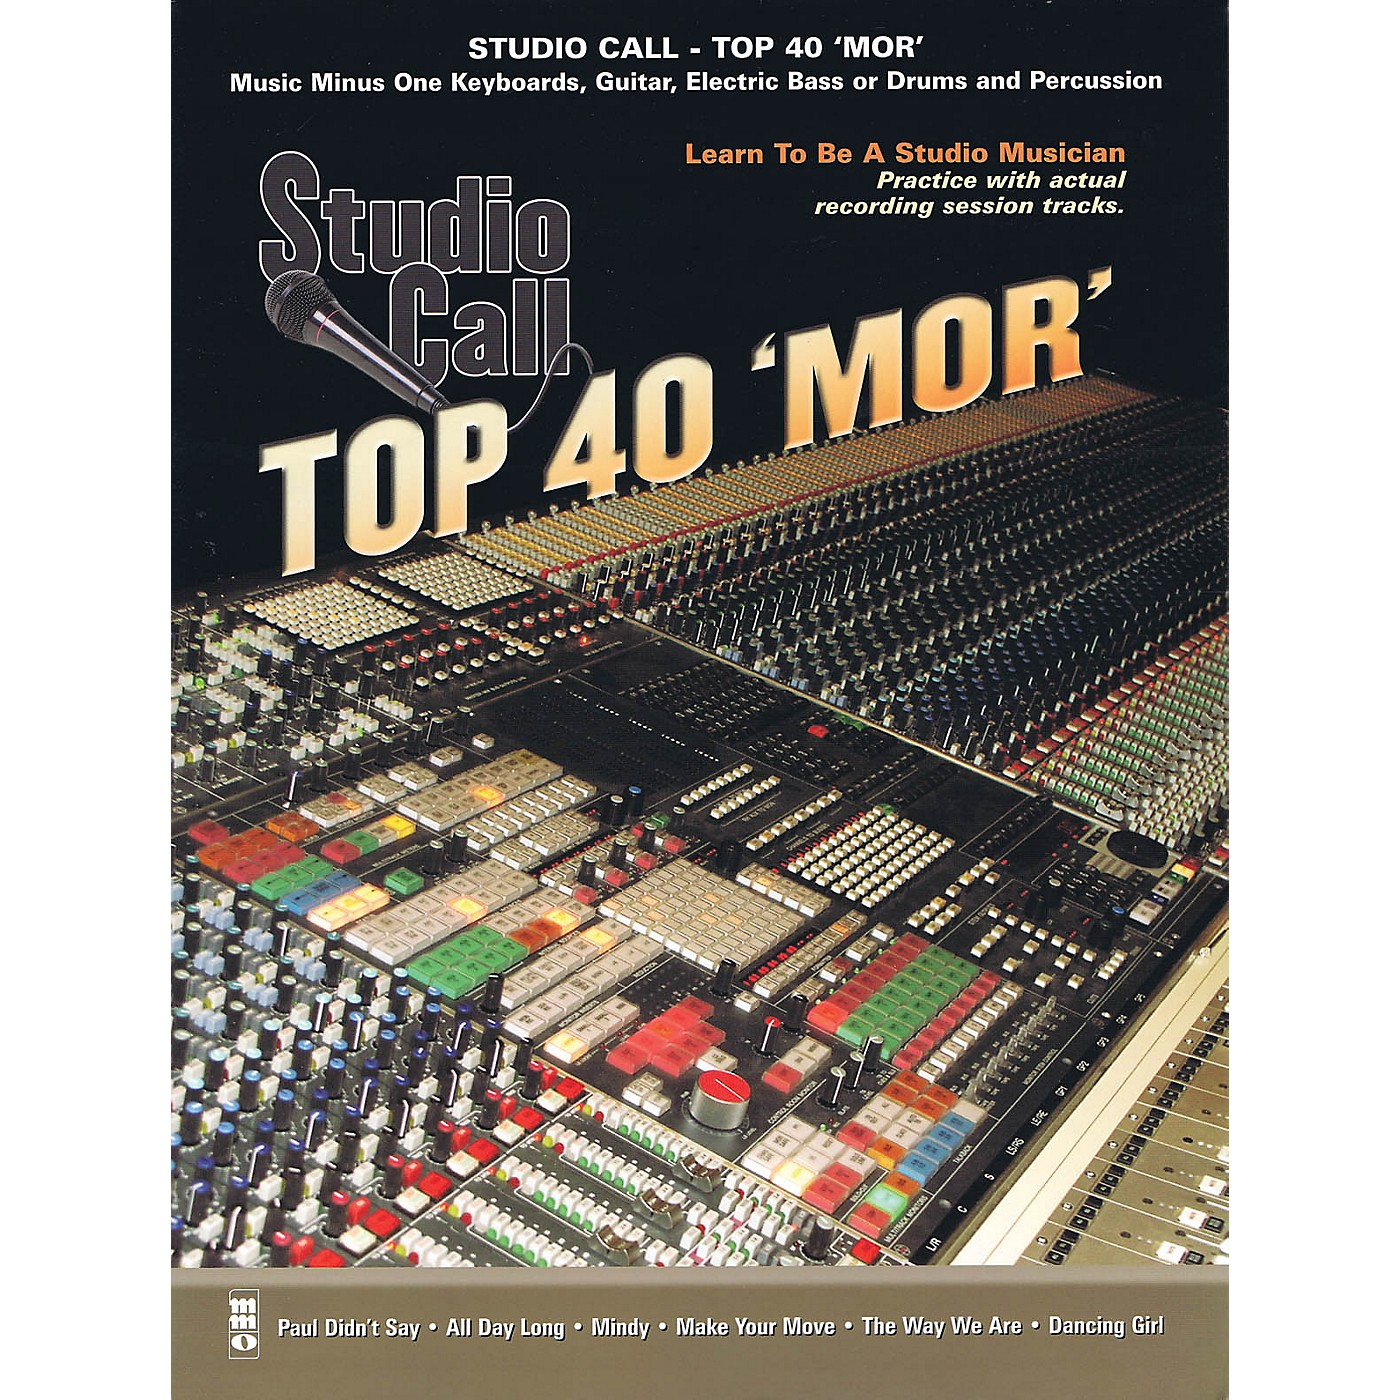 Hal Leonard Studio Call: Top 40 'Mor' - Bass/Electric Bass Music Minus One Series Softcover with CD thumbnail